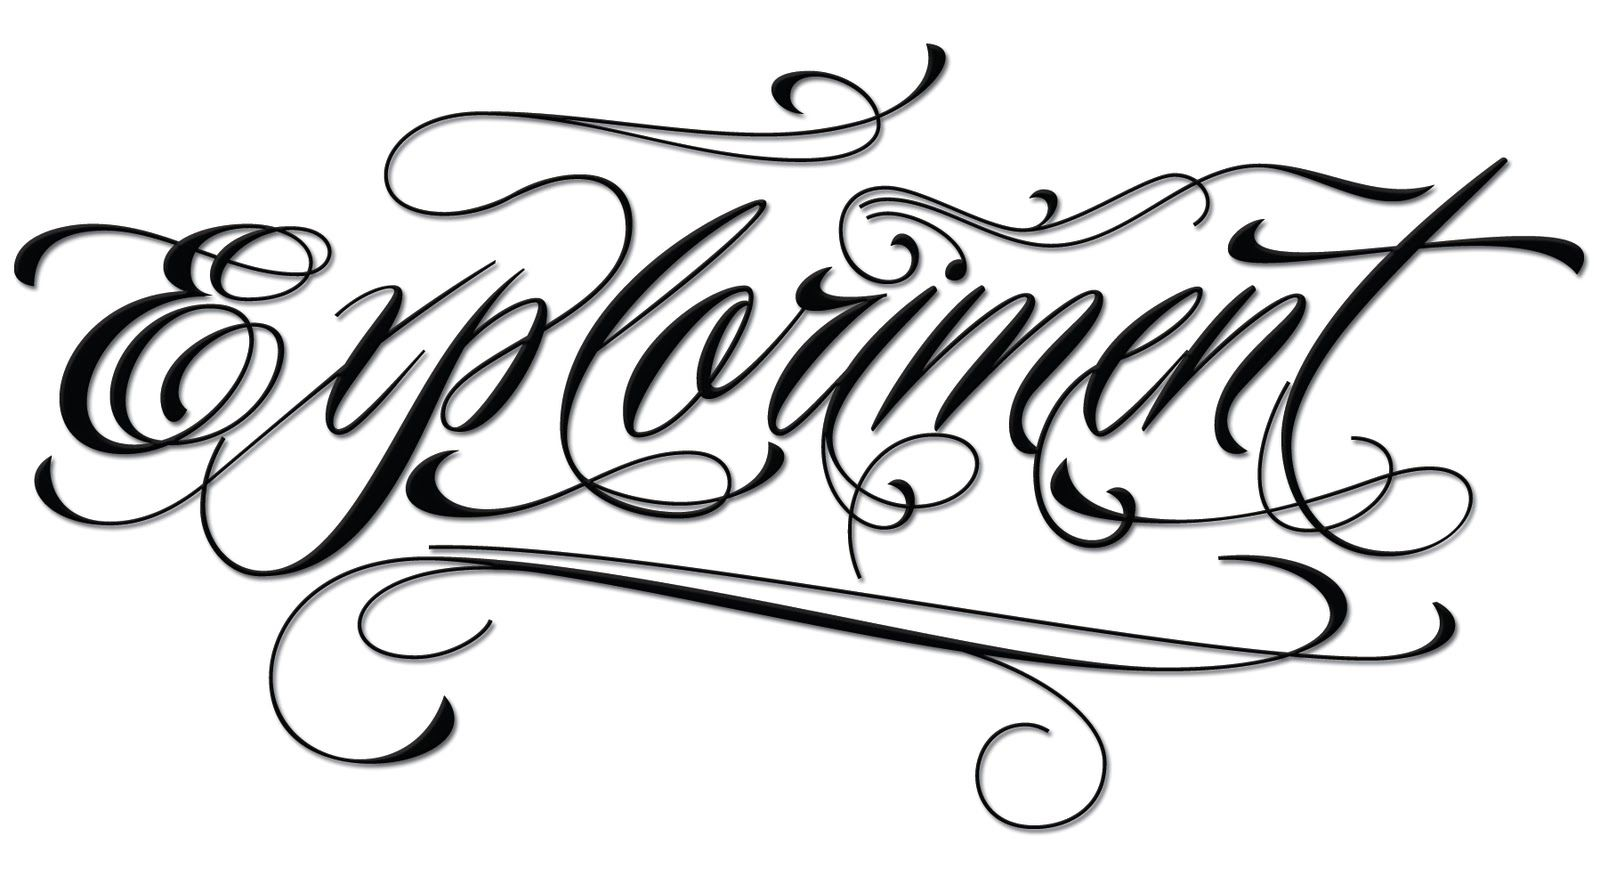 Exploriment Piel Script Free Tattoo Fonts Tattoo Script Fonts Tattoo Lettering